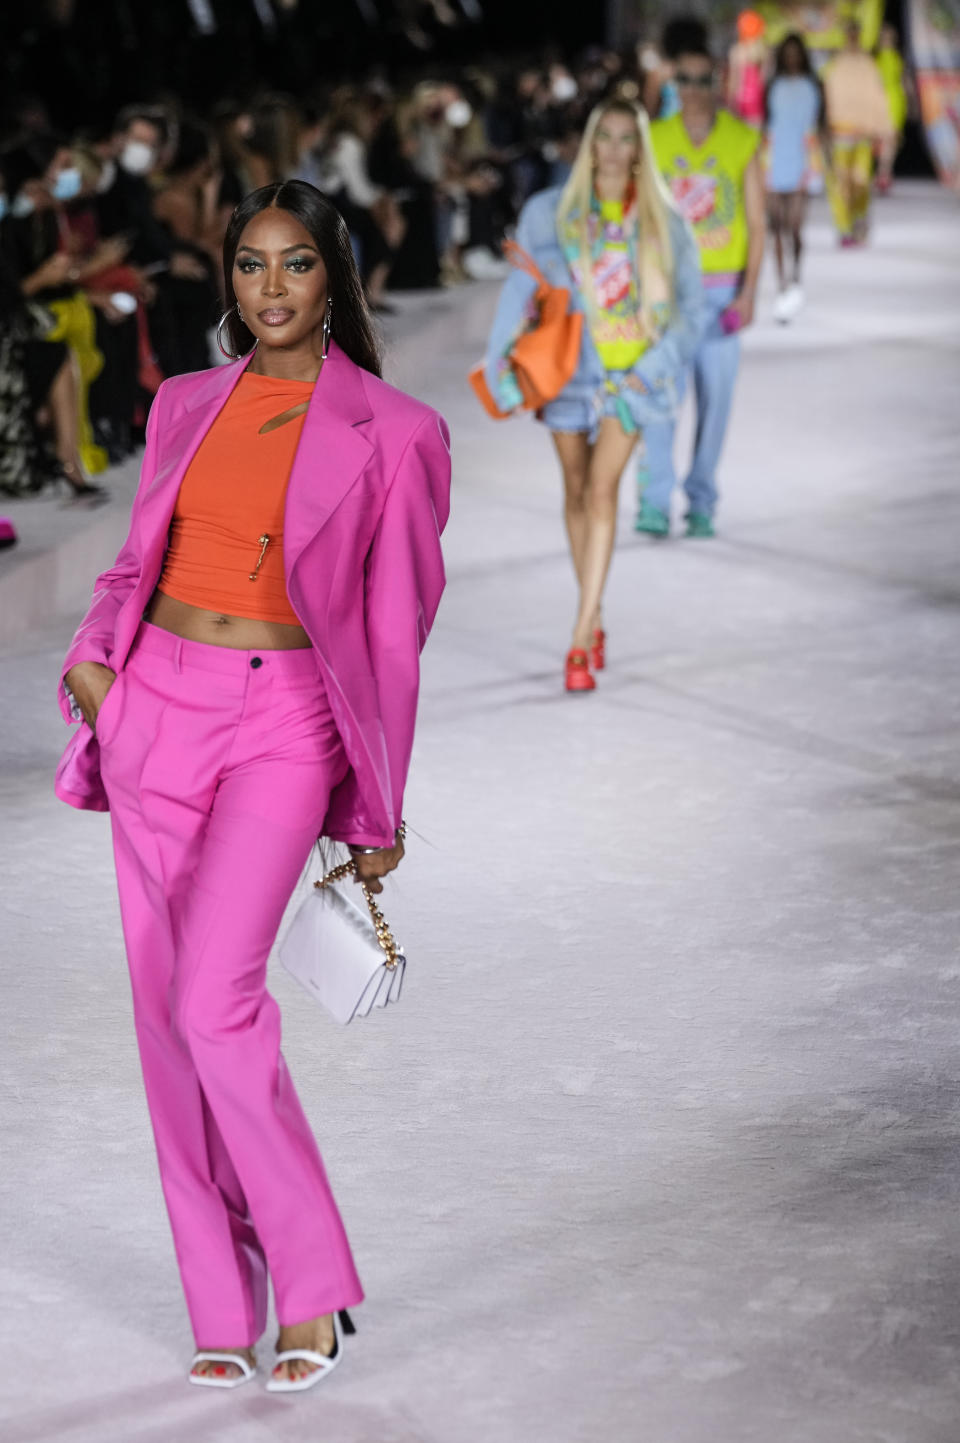 Naomi Campbell wears a creation for the Versace Spring Summer 2022 collection during Milan Fashion Week, in Milan, Italy, Friday, Sept. 24, 2021. (AP Photo/Luca Bruno)